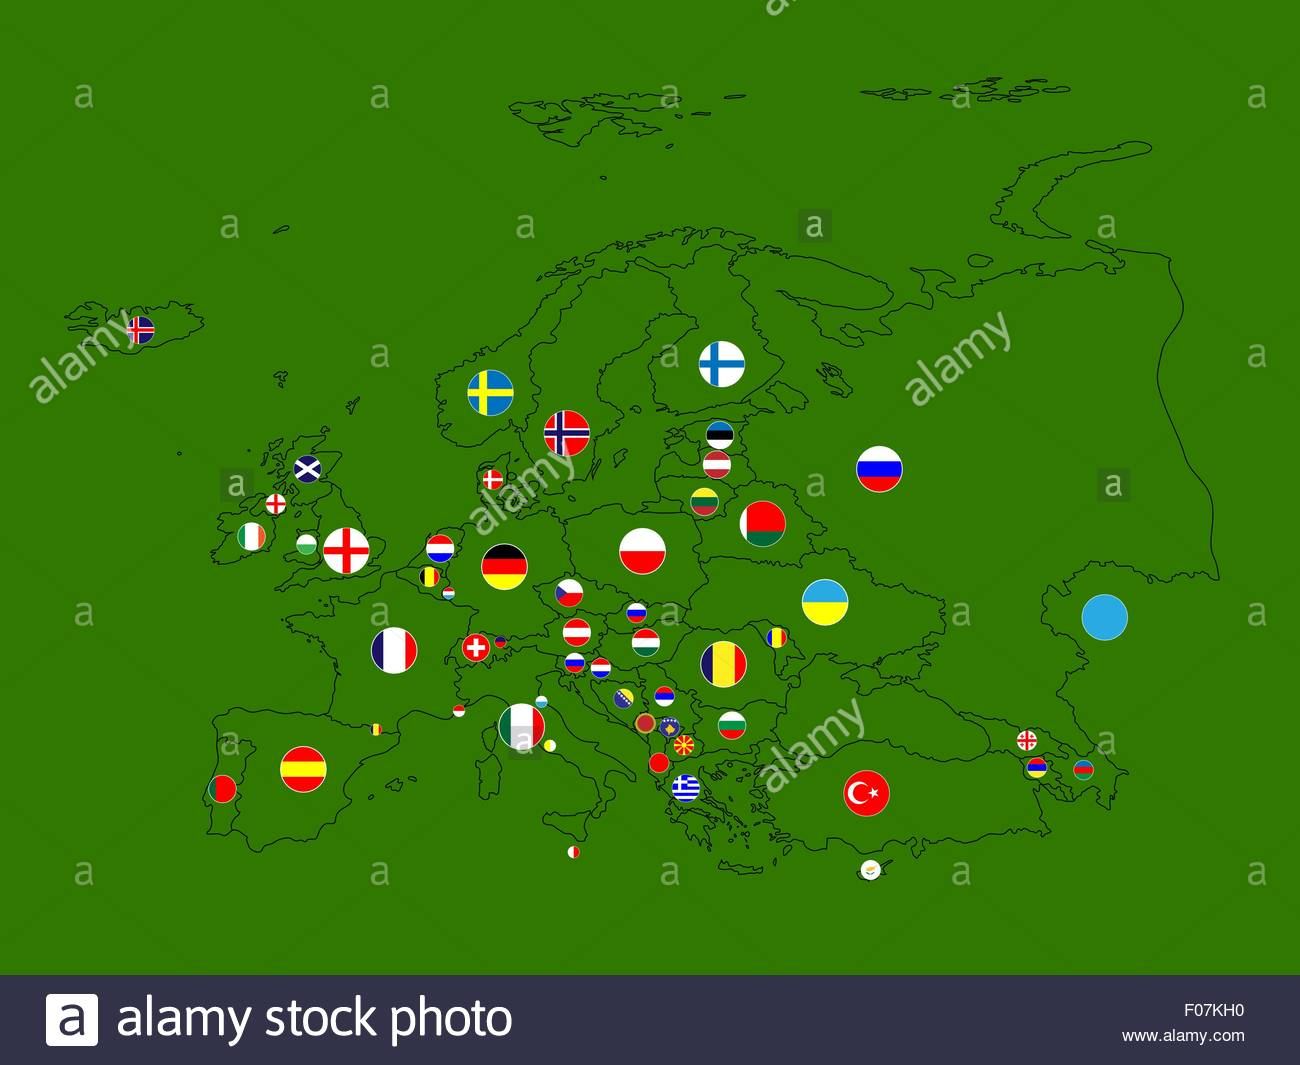 Europe Map Circles - Stock Vector